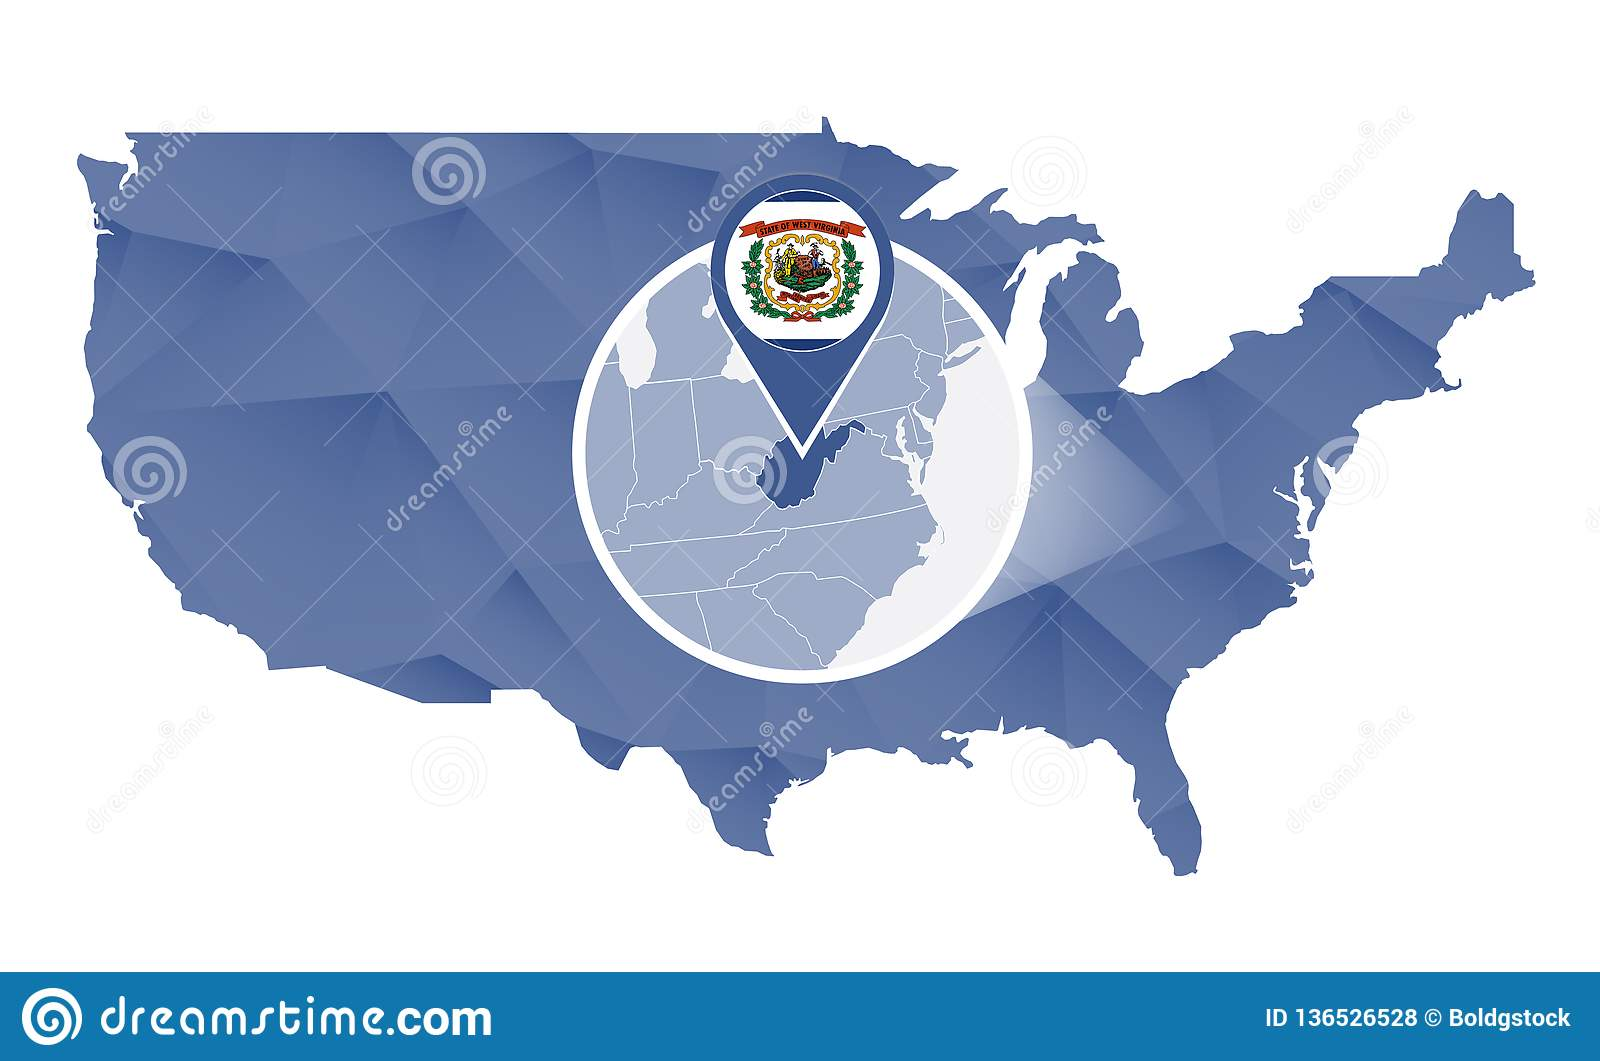 West Virginia State Magnified On United States Map Stock ...